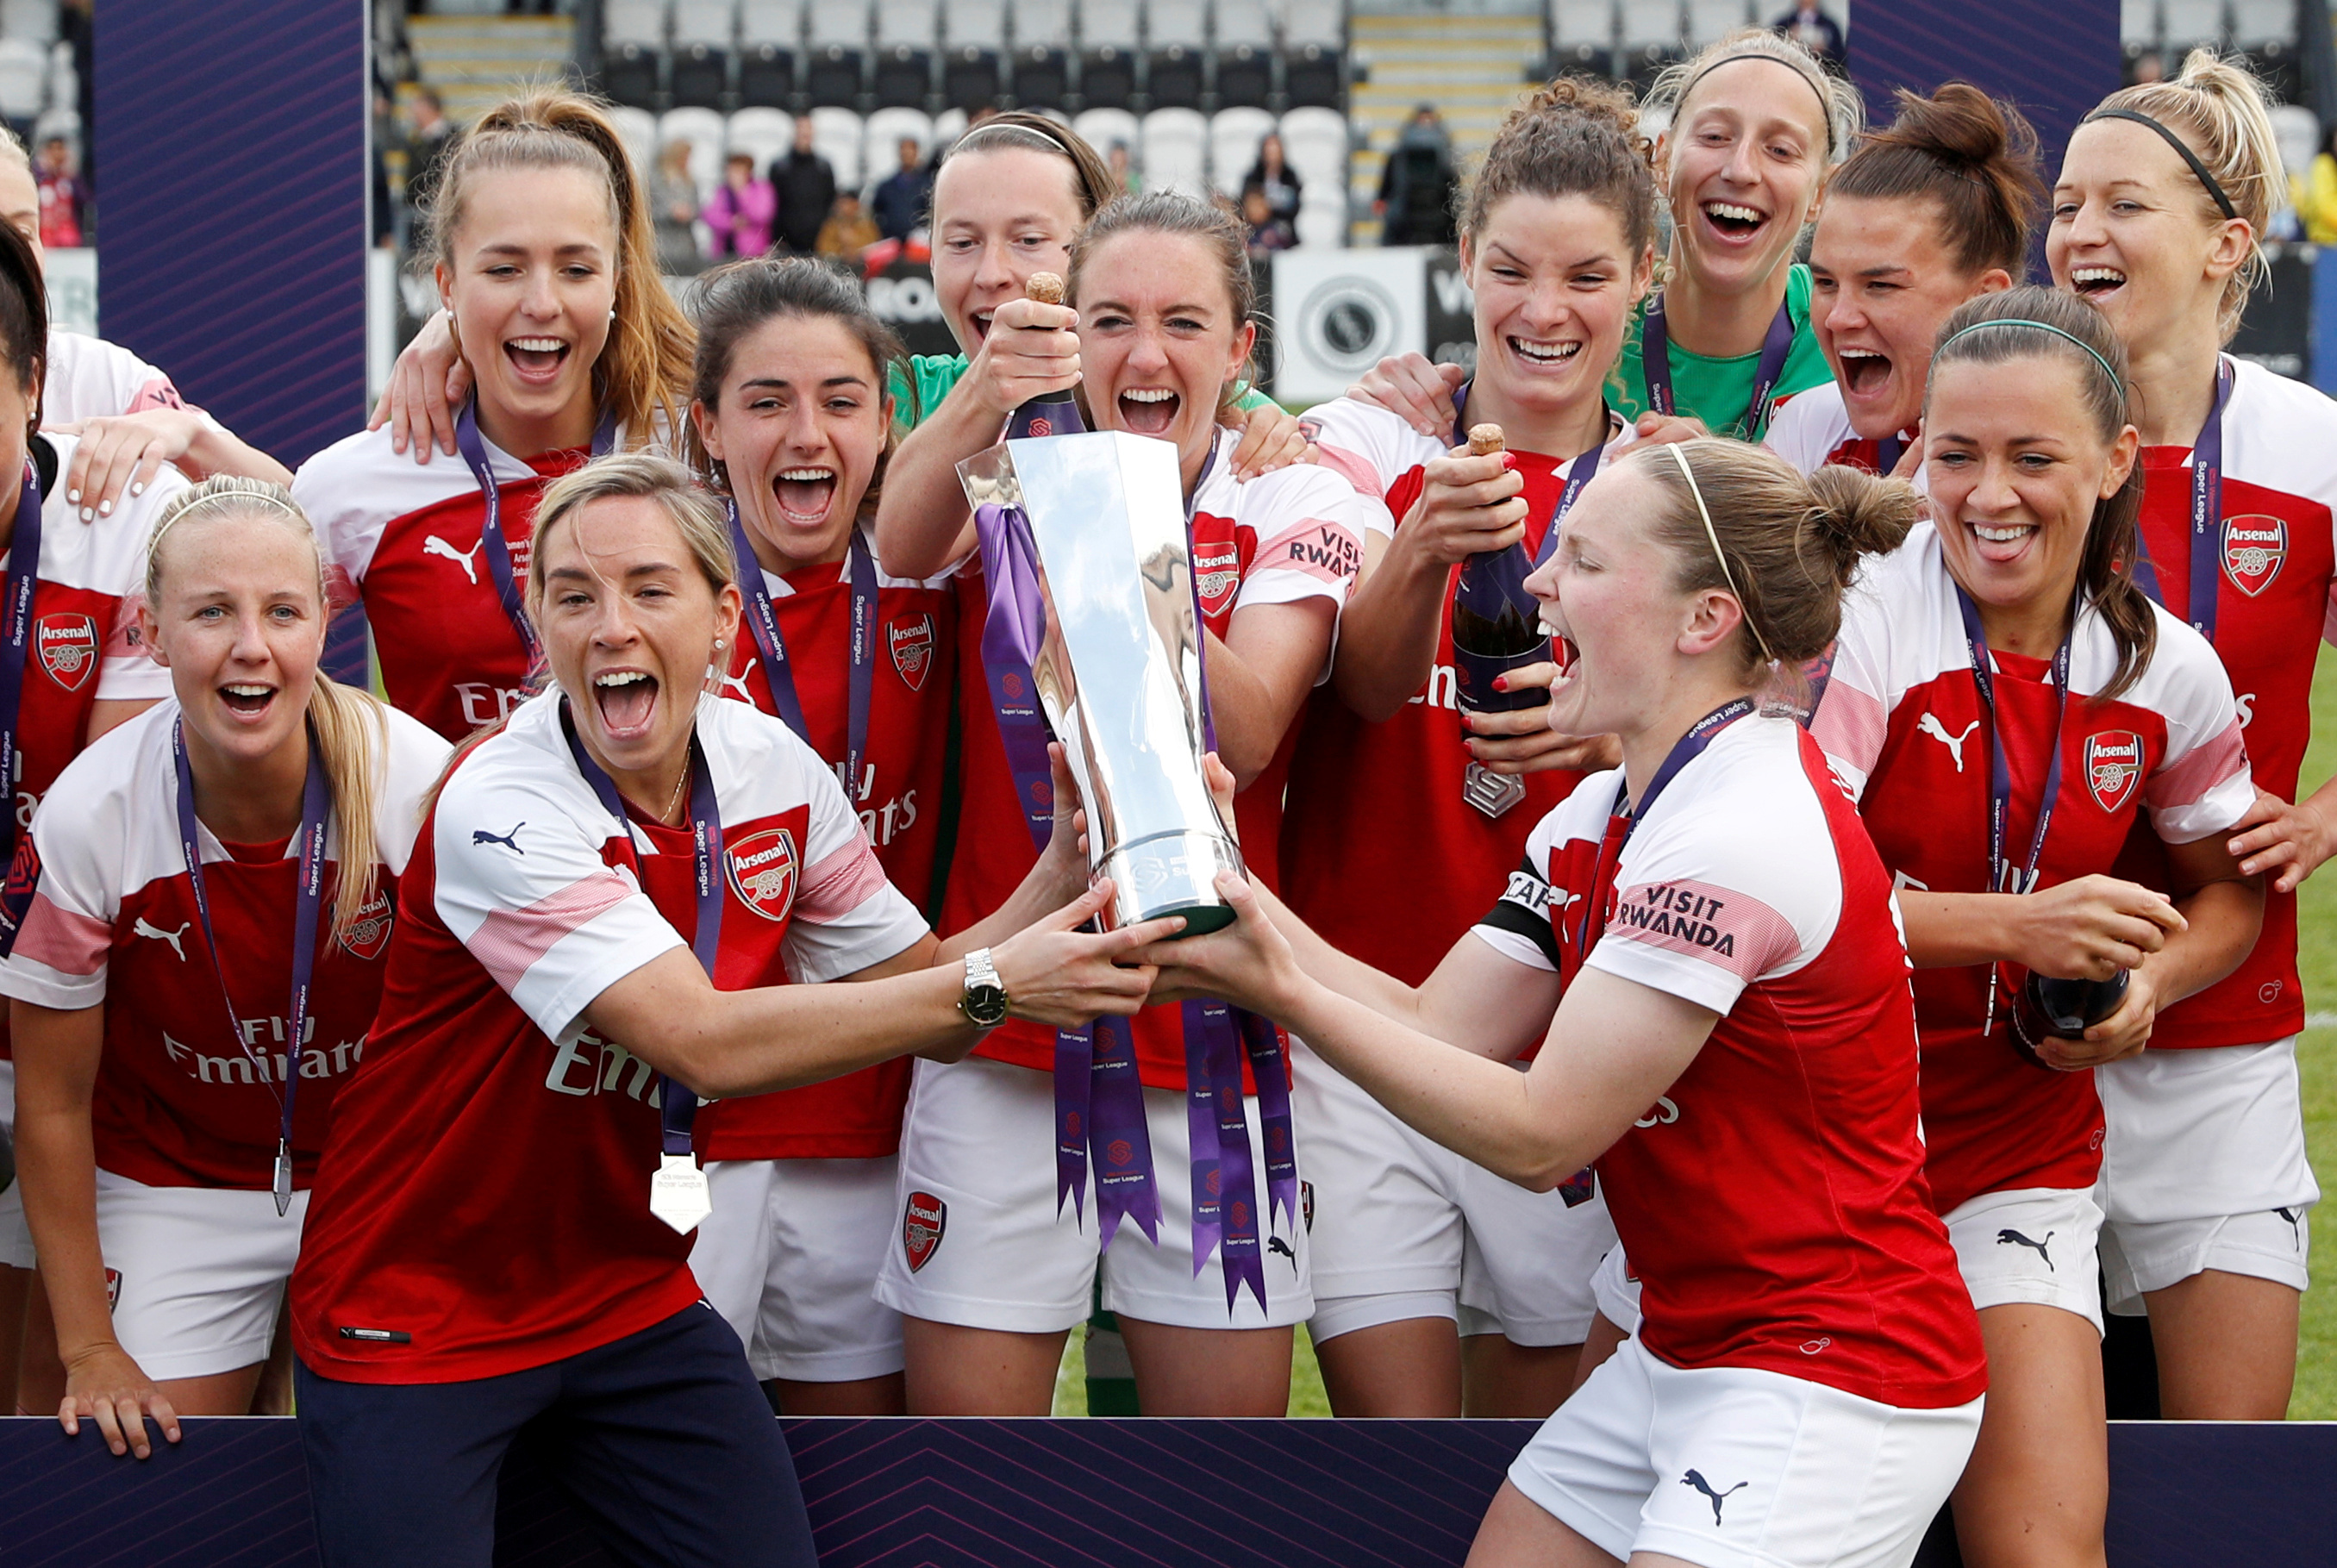 Premier League a step closer to taking control of WSL   The Star Online